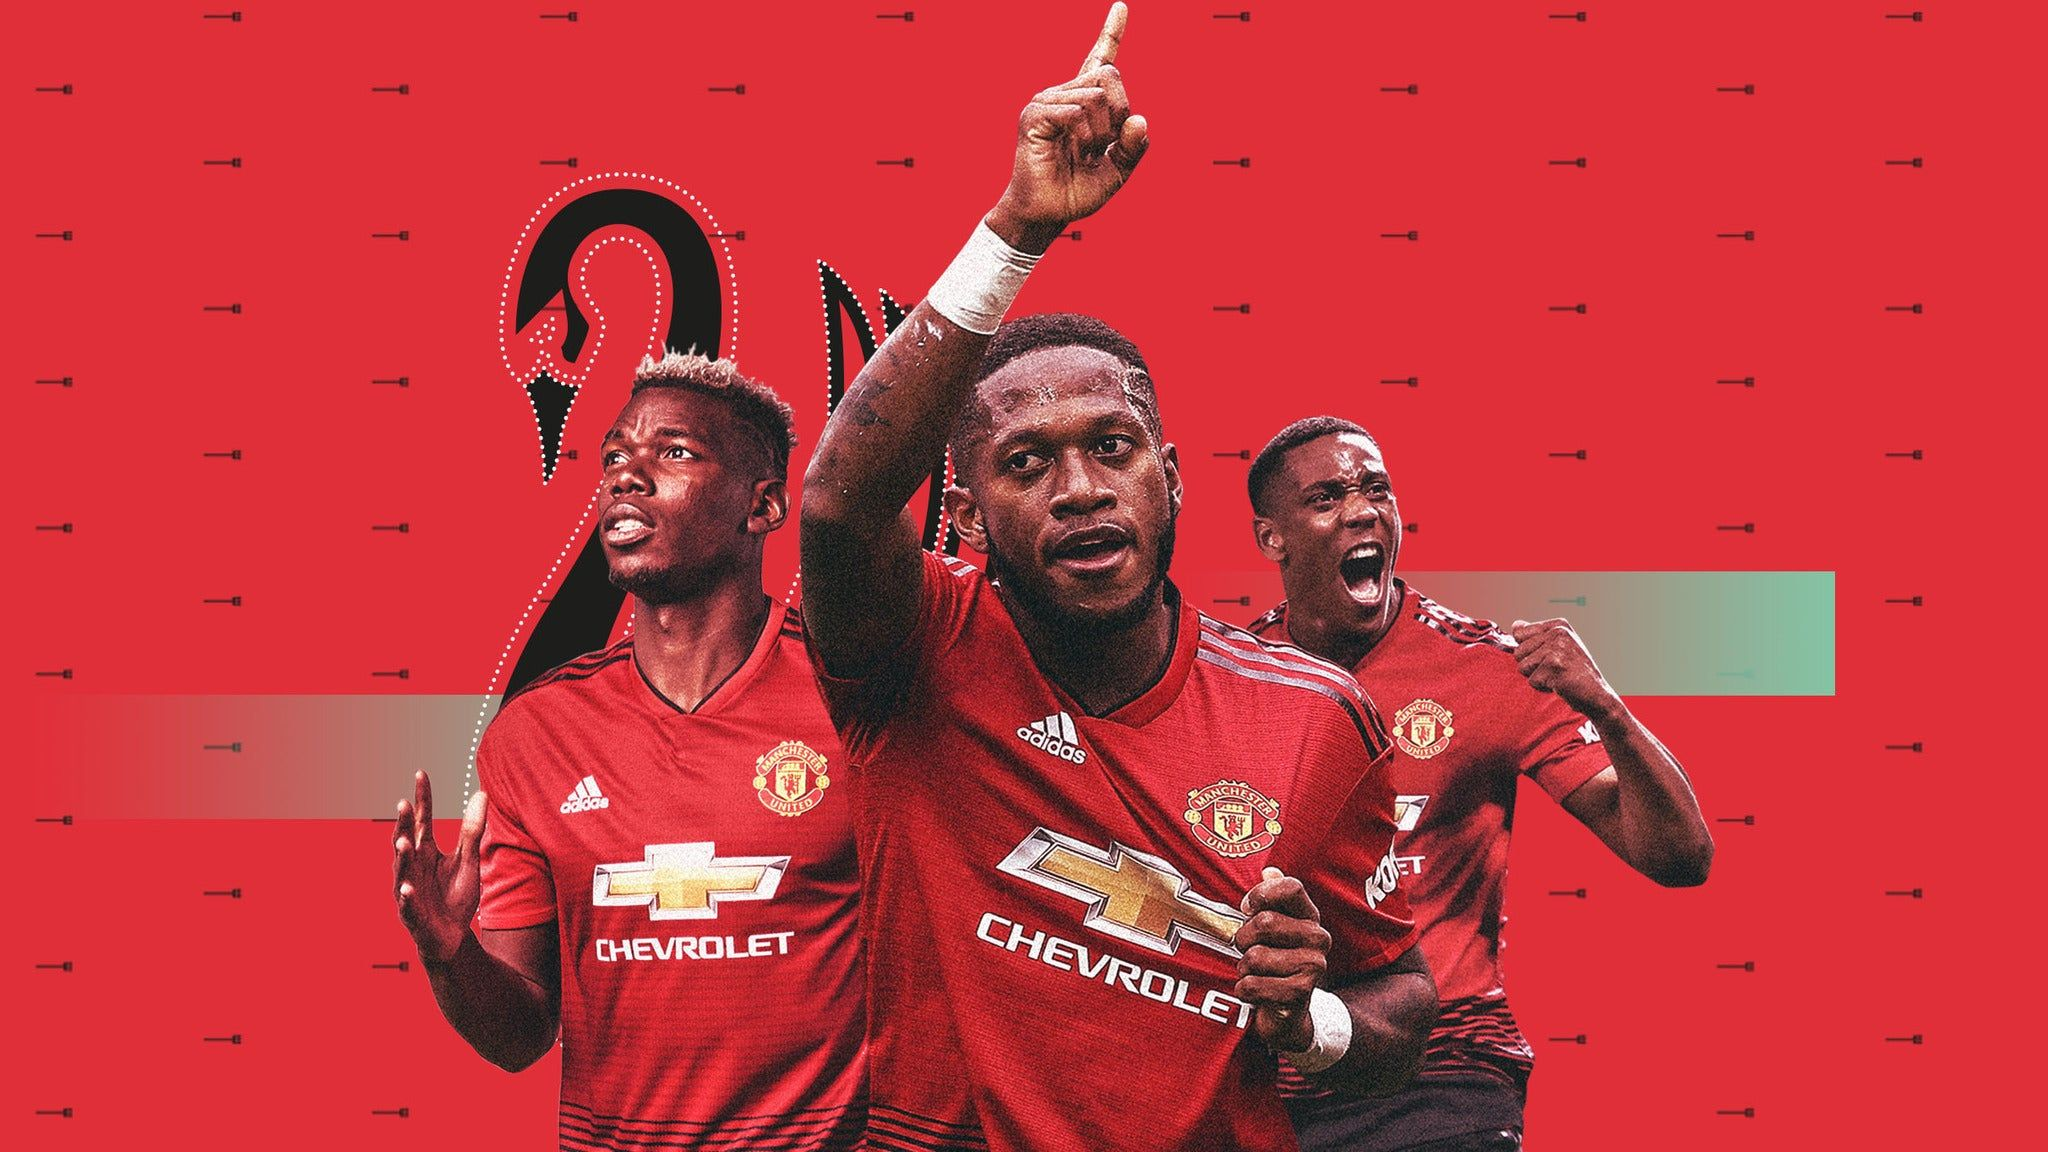 manchester united tickets just book it now just book it now